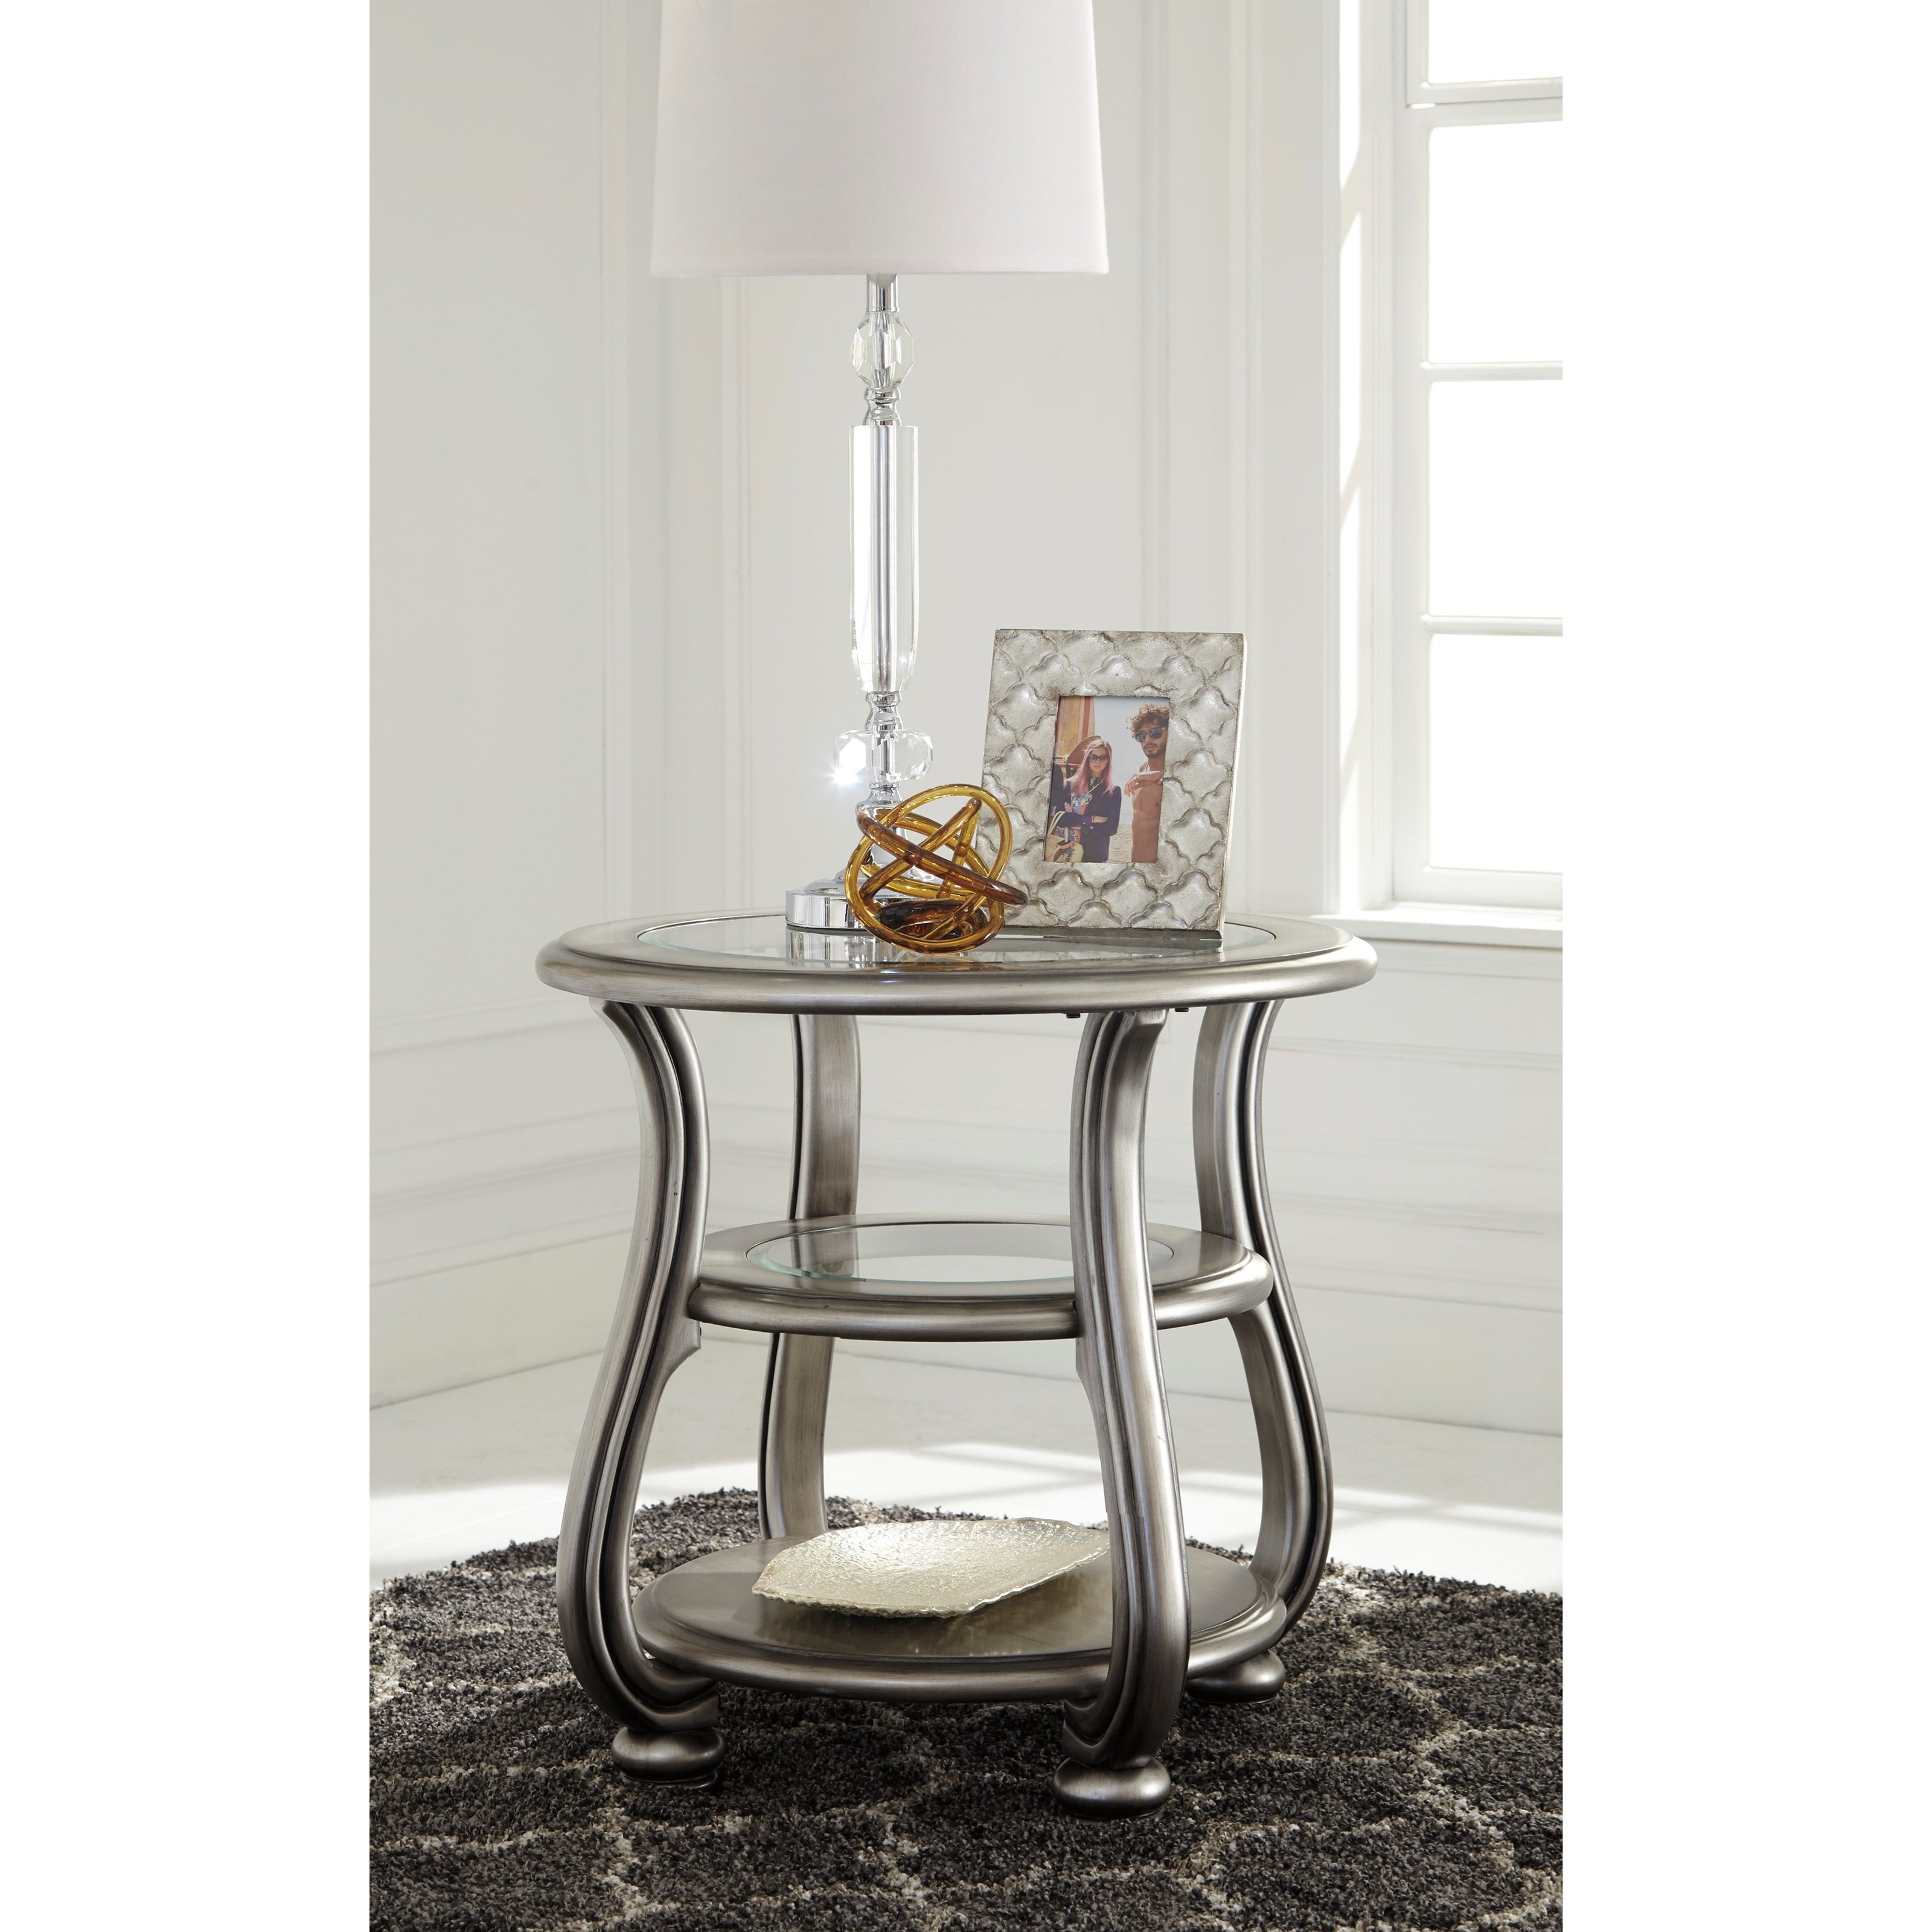 Ashley signature design coralayne t820 6 round end table for Bright colored side tables